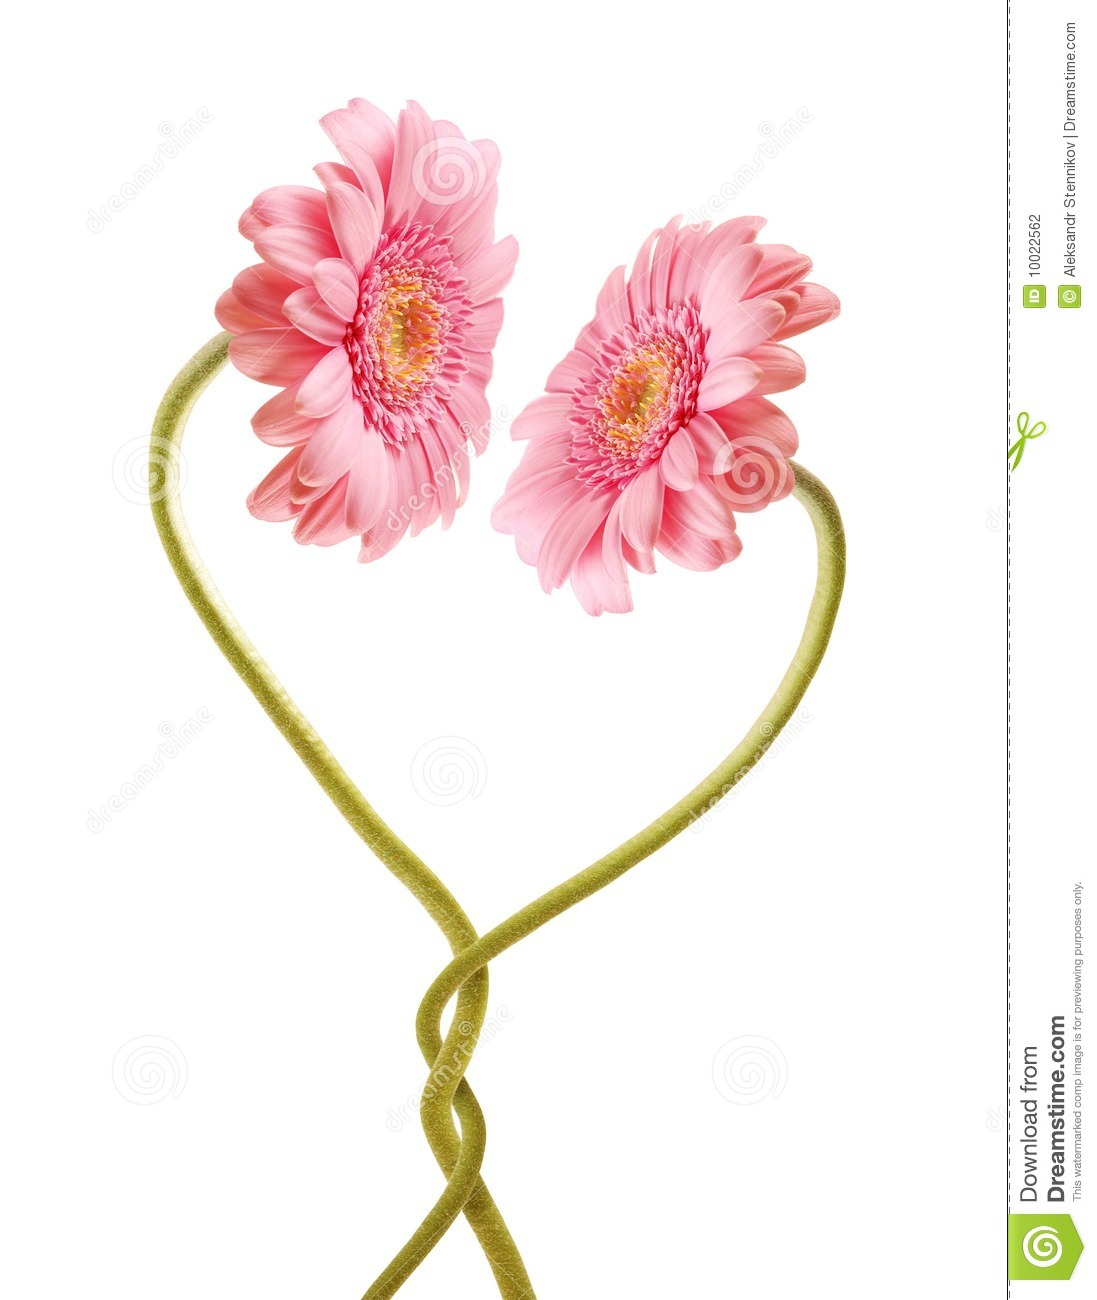 Flower Love Stock Photography - Image: 10022562